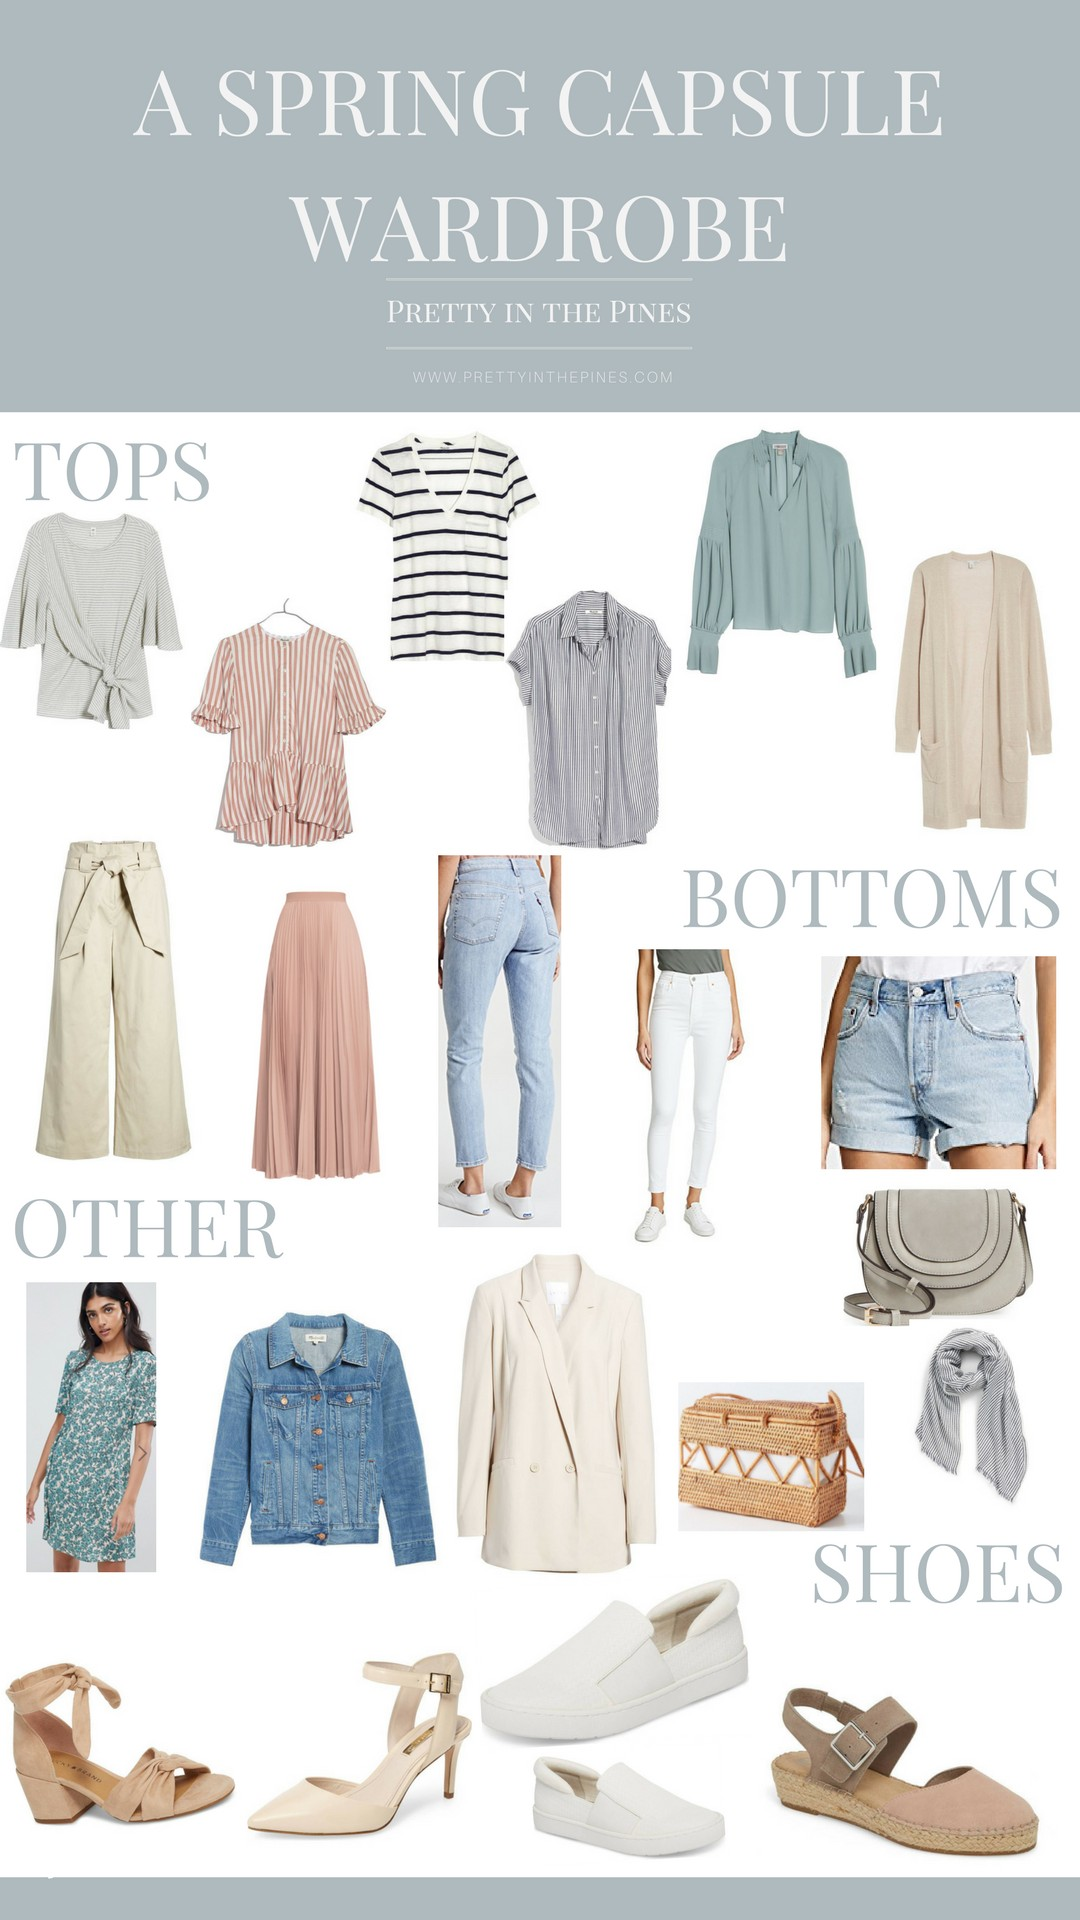 77050928d1b Building a Spring Capsule Wardrobe with 21 Pieces